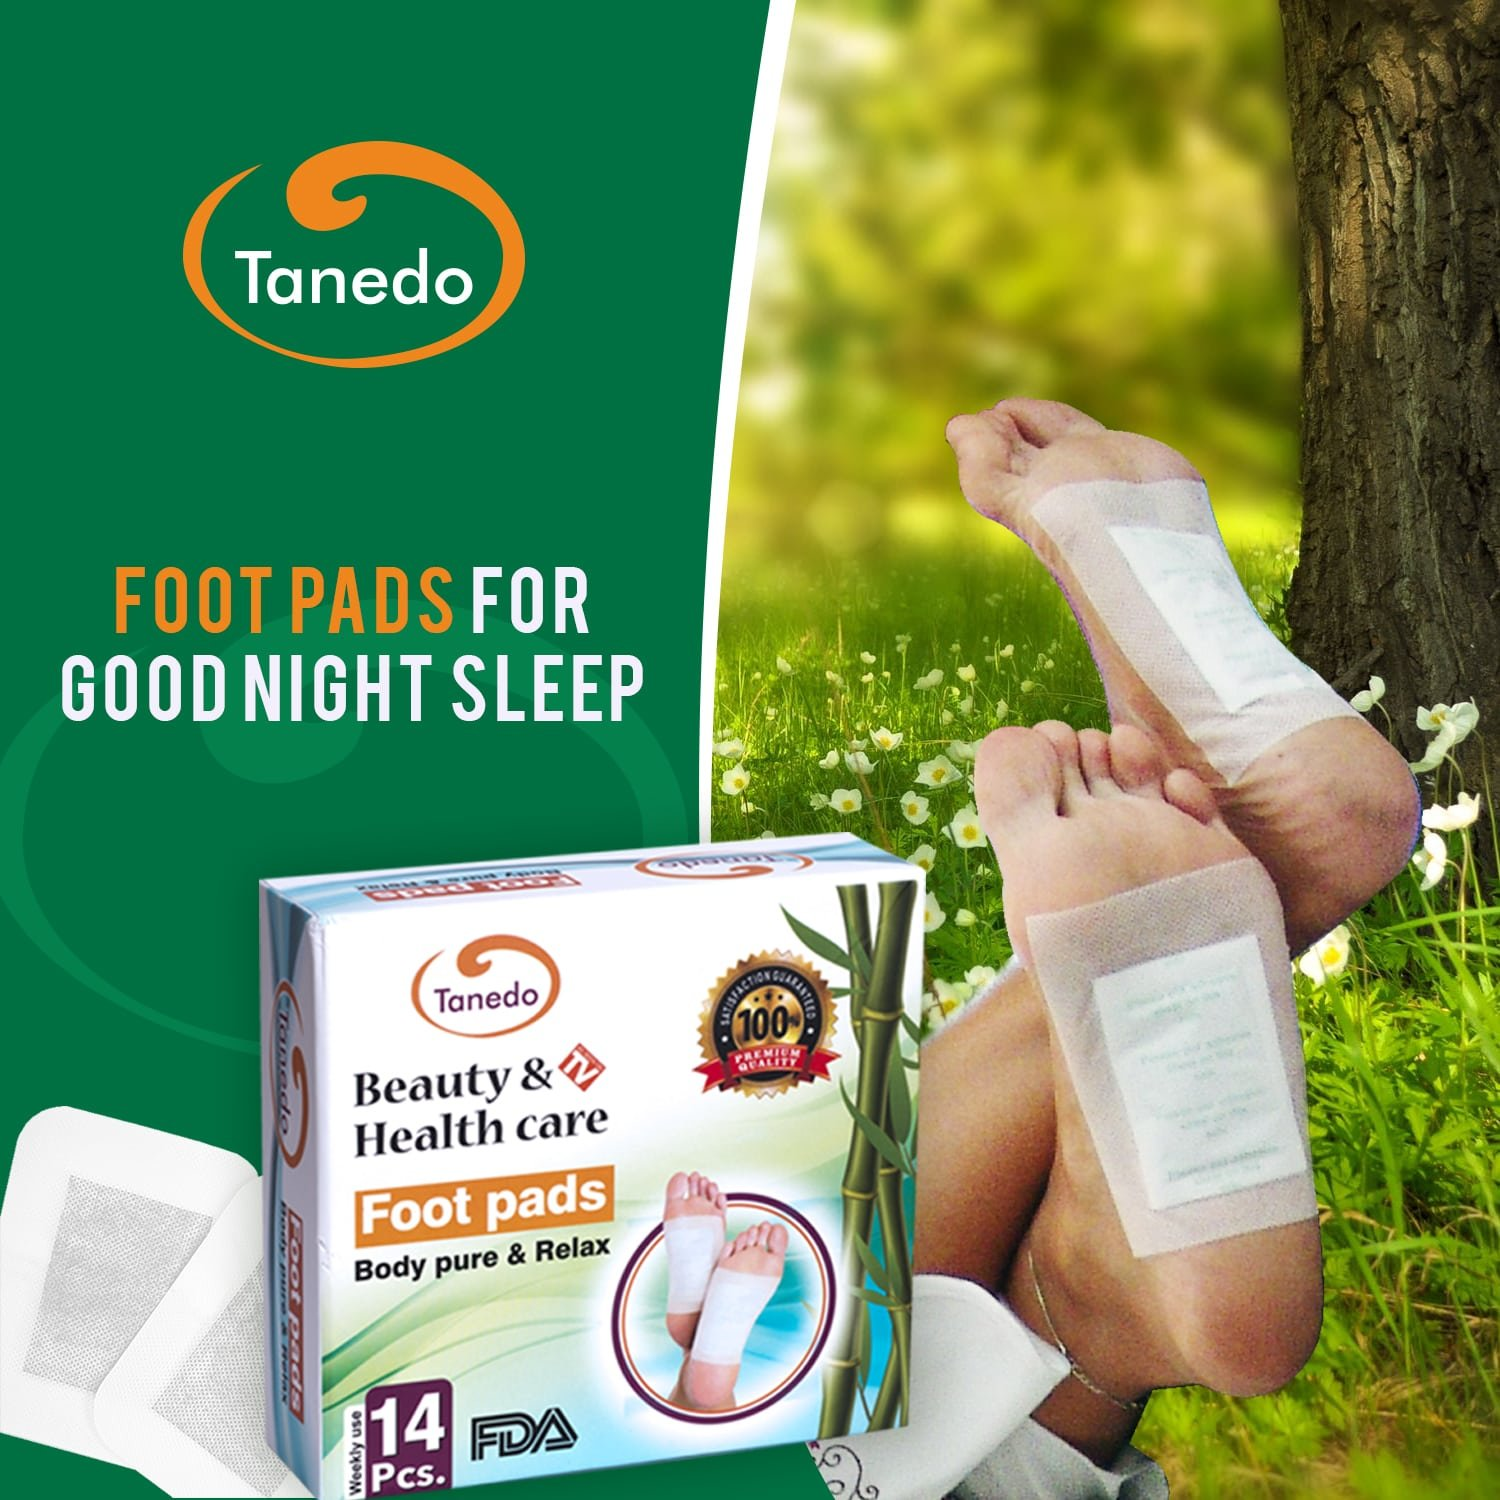 Foot Pads for Good Night Sleeps, Helps Body Cleansing, Pain Relief, 14 Pcs.